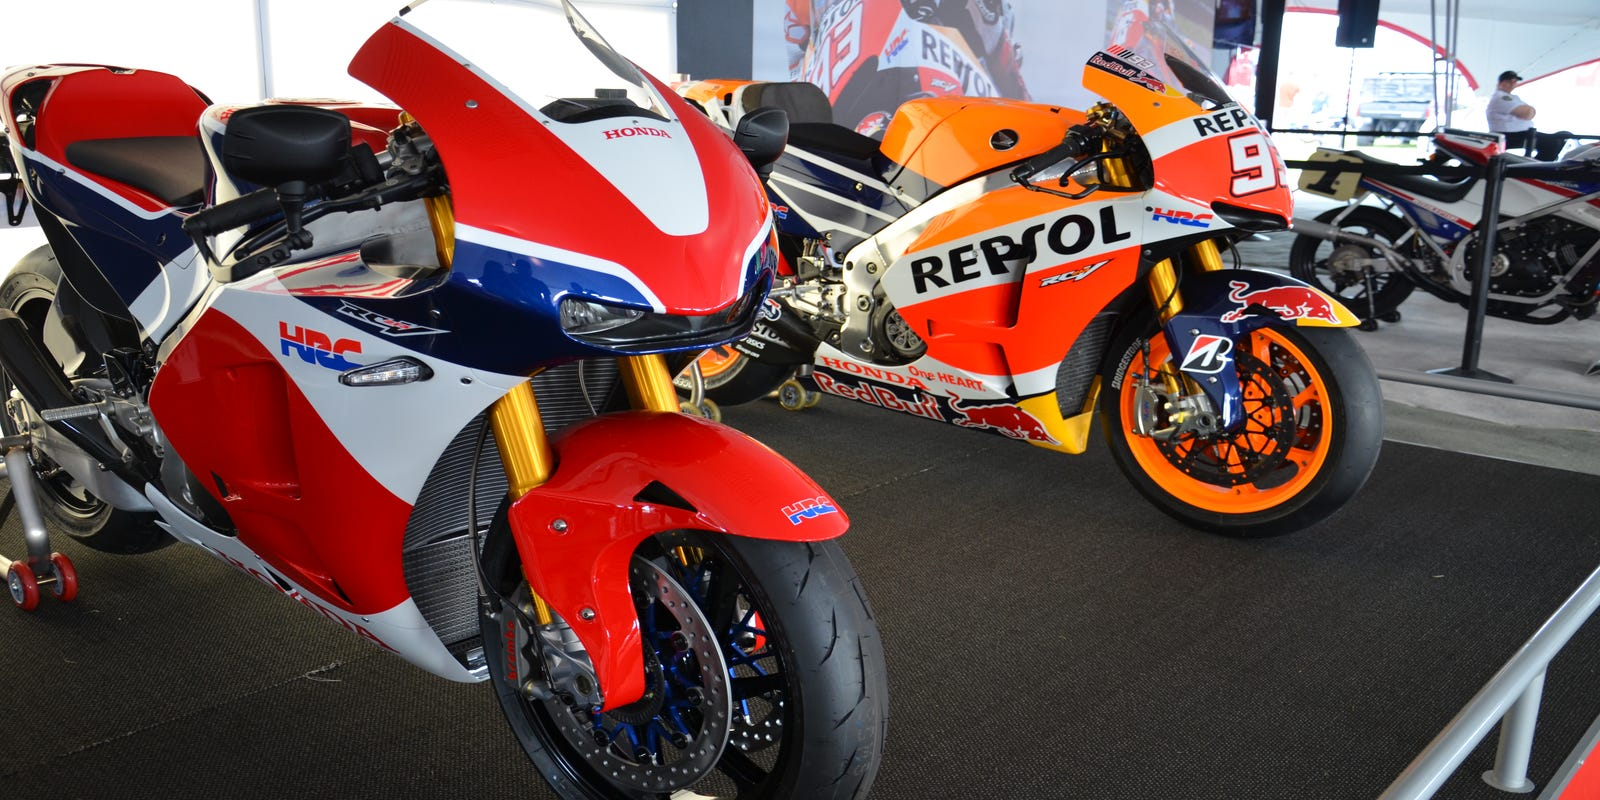 Why These Motogp Bikes Cost 2 Million Hp Stroke Parts Diagram On Yamaha 50